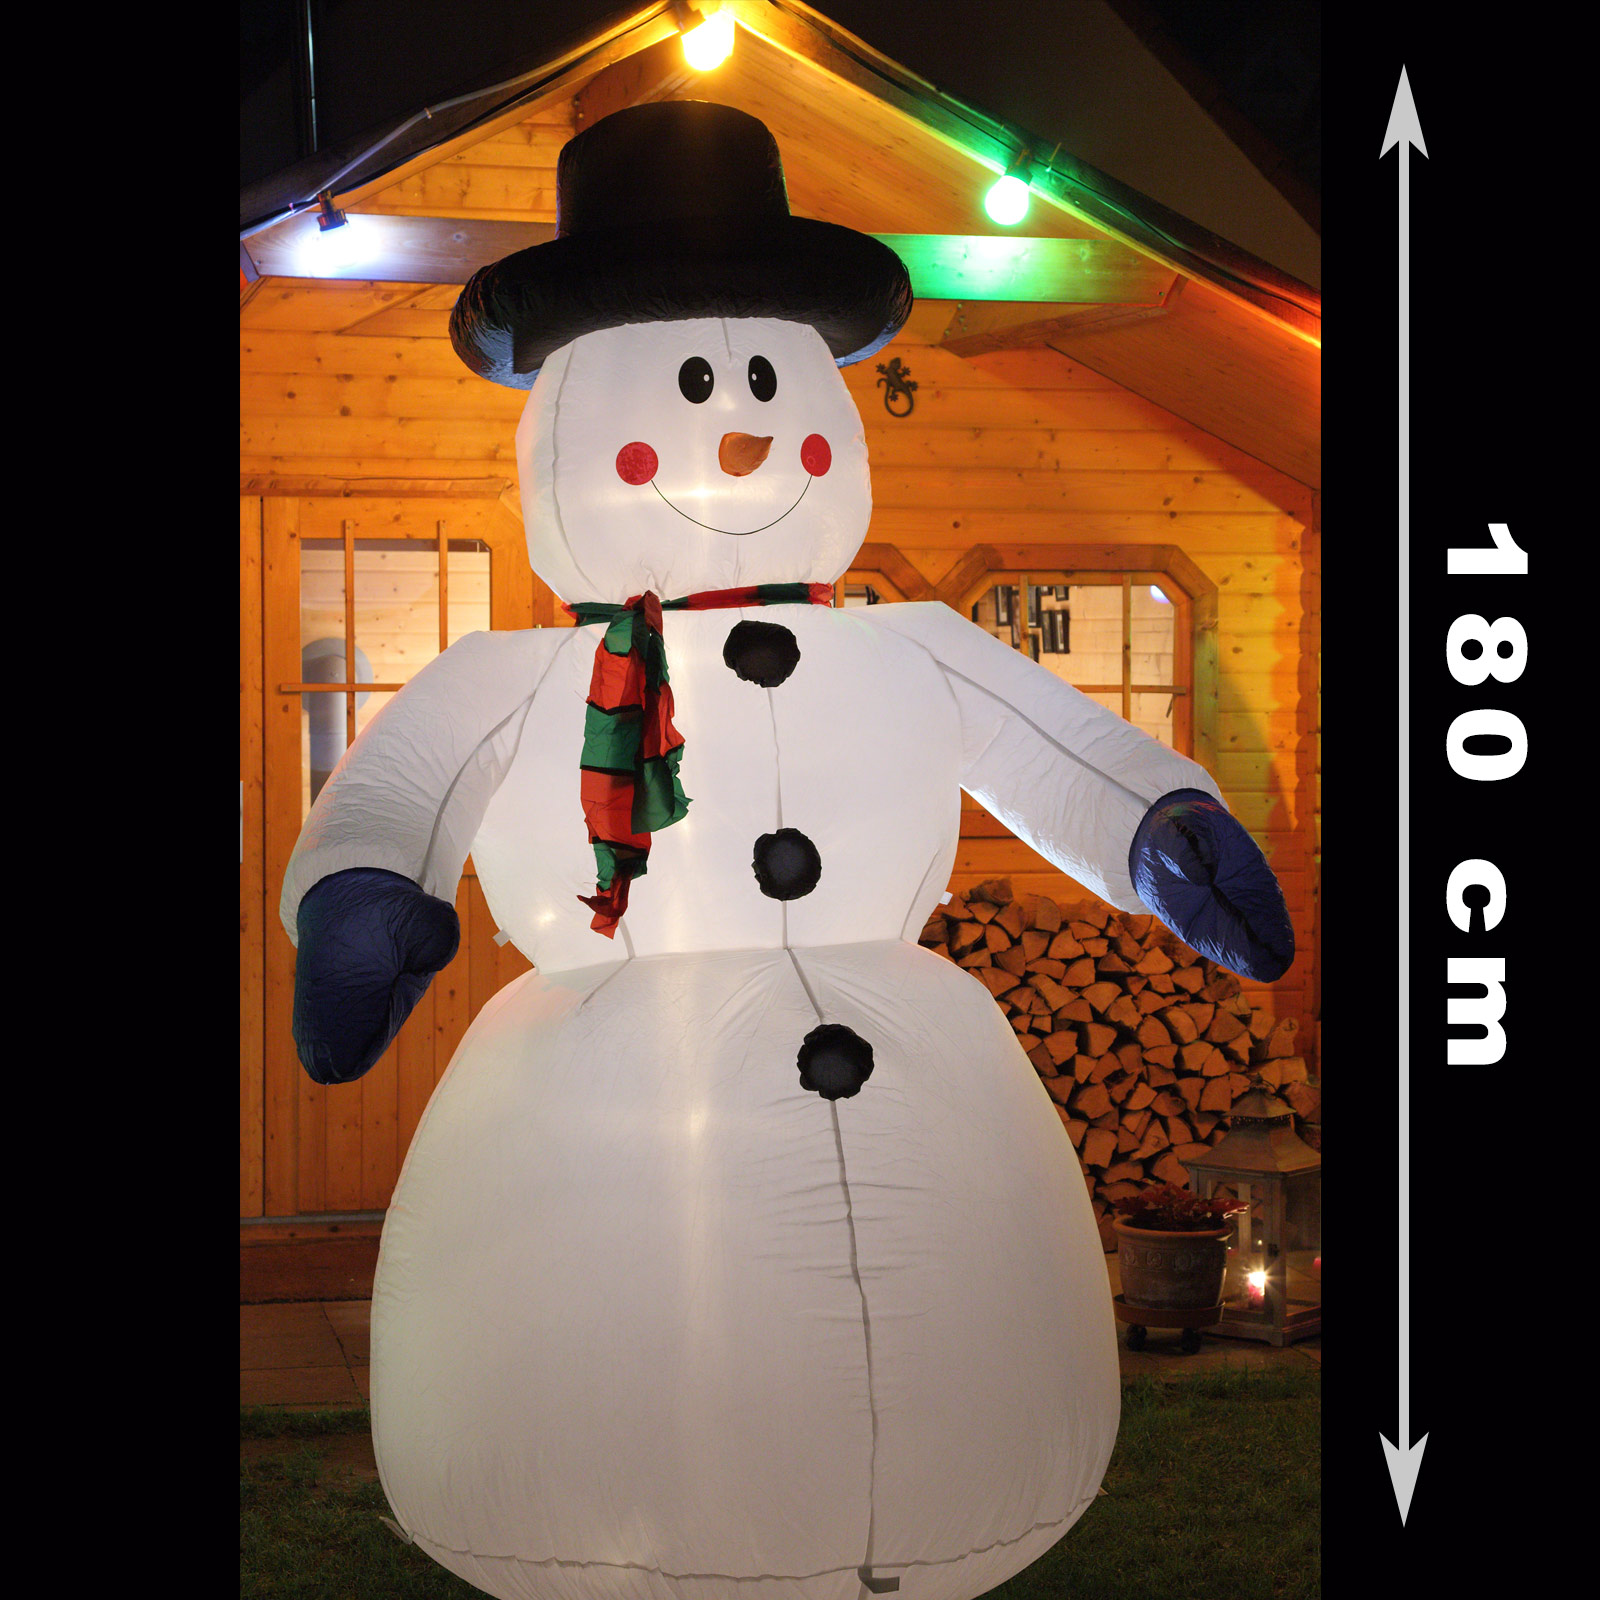 schneemann 180 cm weihnachtsfigur aufblasbar beleuchtet. Black Bedroom Furniture Sets. Home Design Ideas